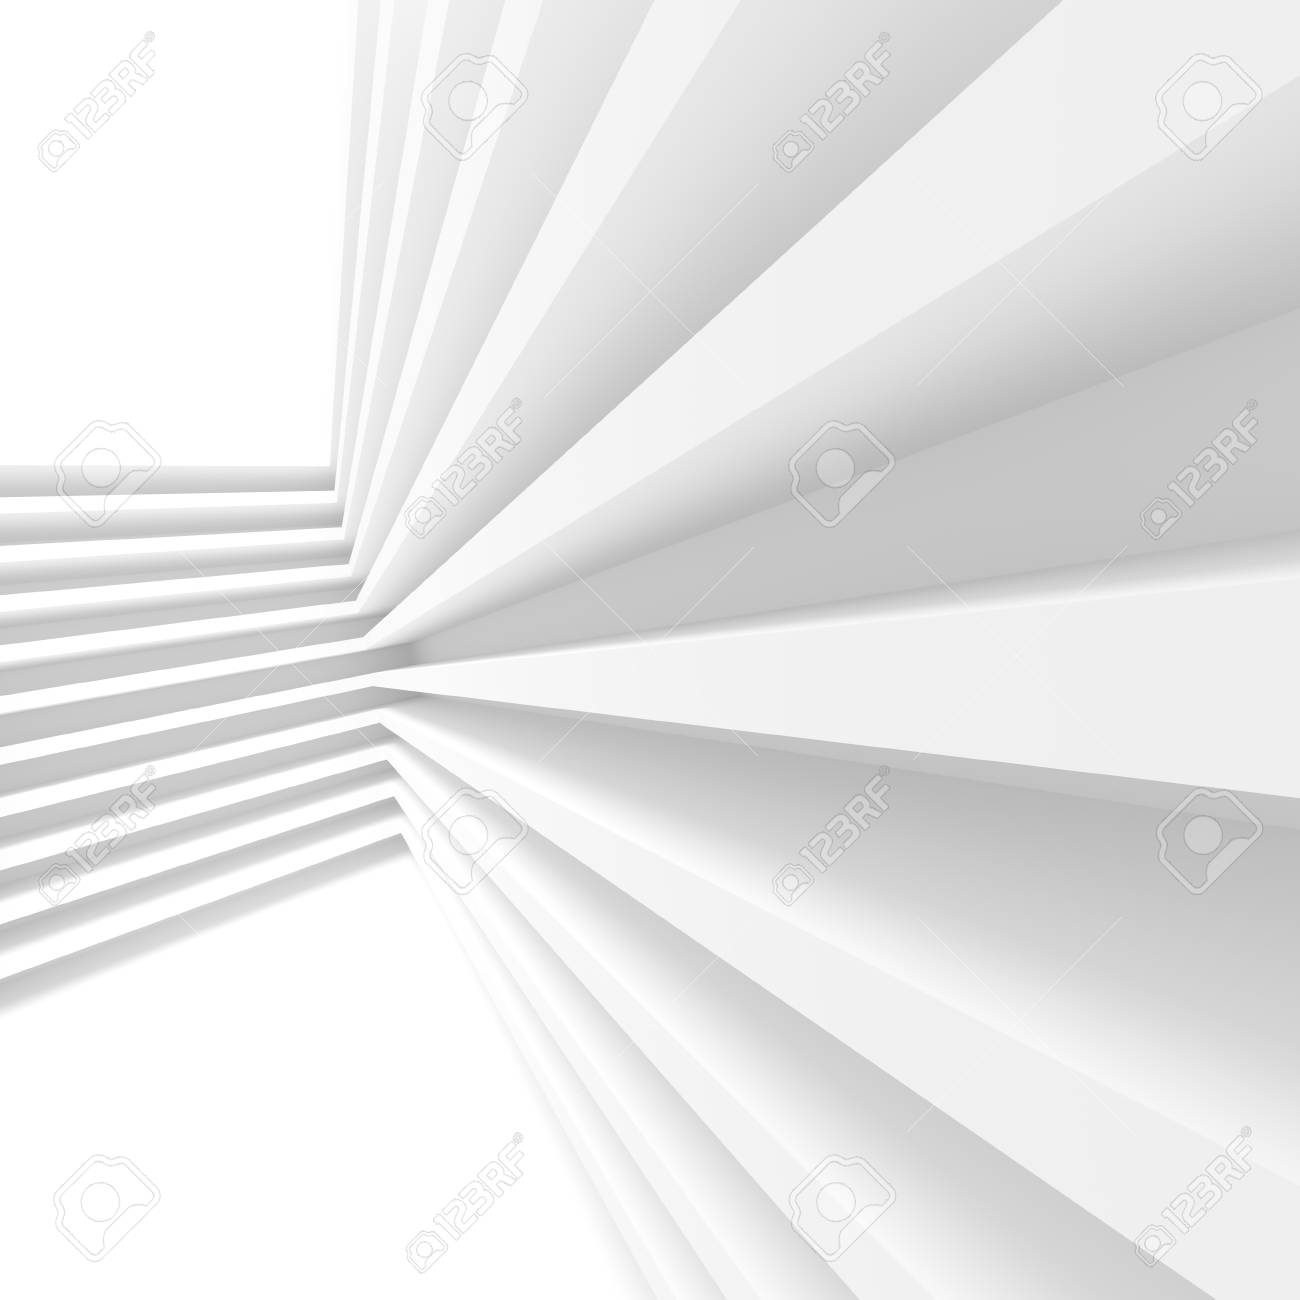 3d Illustration Of White Abstract Architecture Background Building Blocks Creative Web Wallpaper Stock